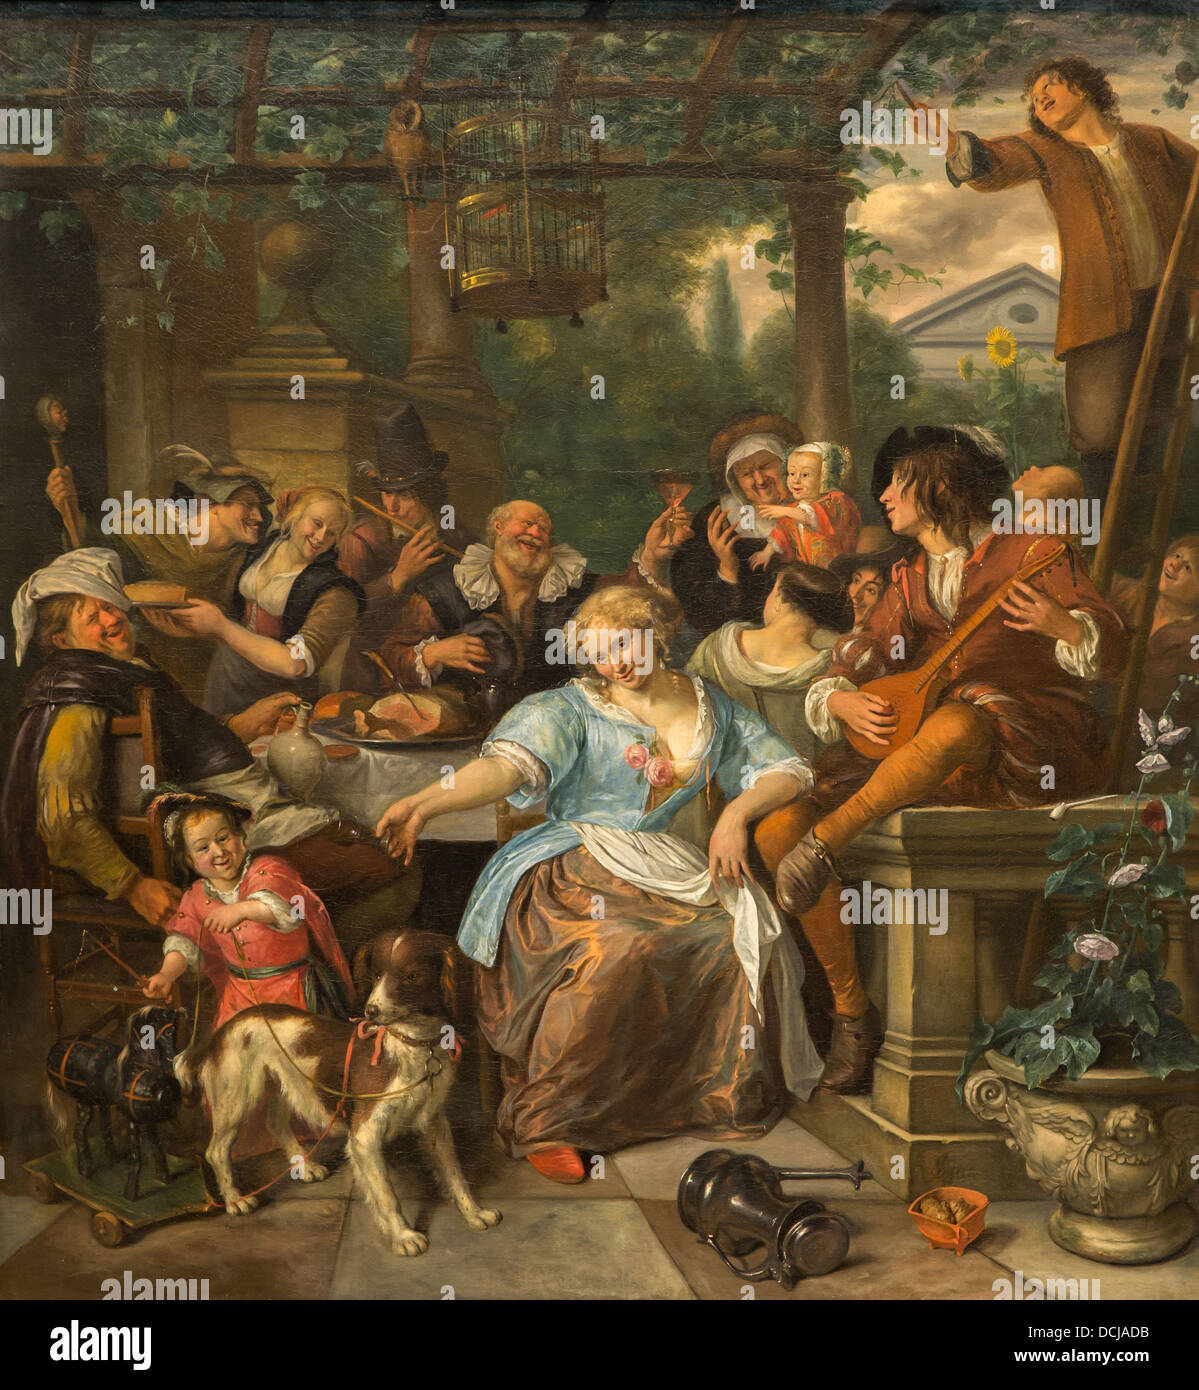 17th century - Merry Company on a Terrace - Jan Steen (1670) - Metropolitan  Museum of Art - New York Oil on canvas